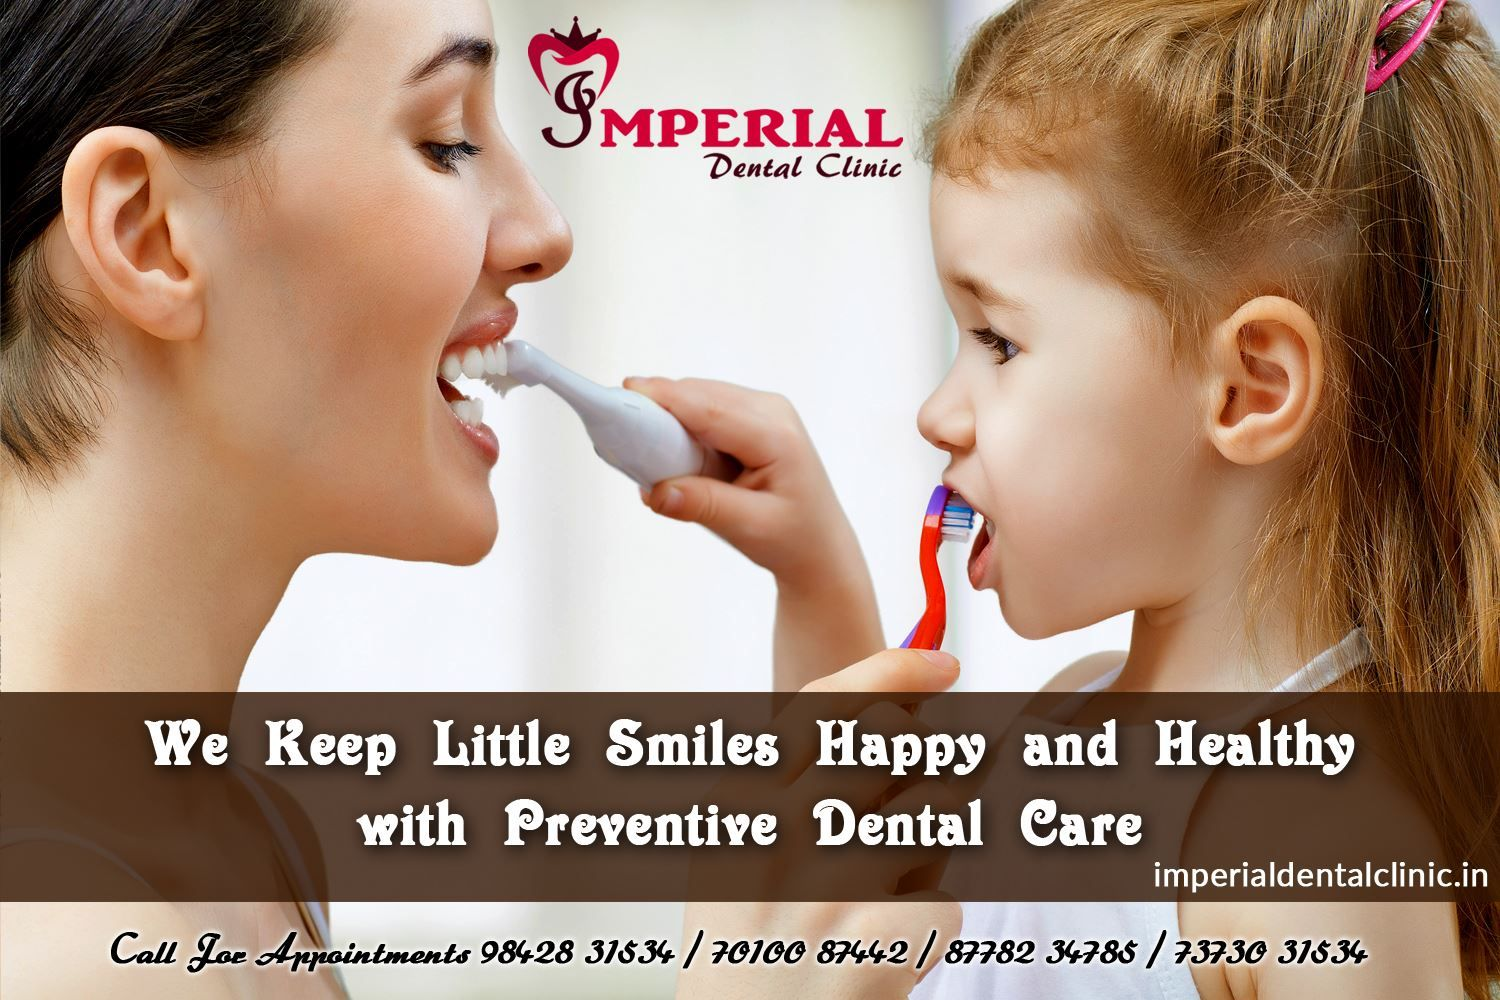 We Keep Little Smiles Happy and Healthy with Preventive